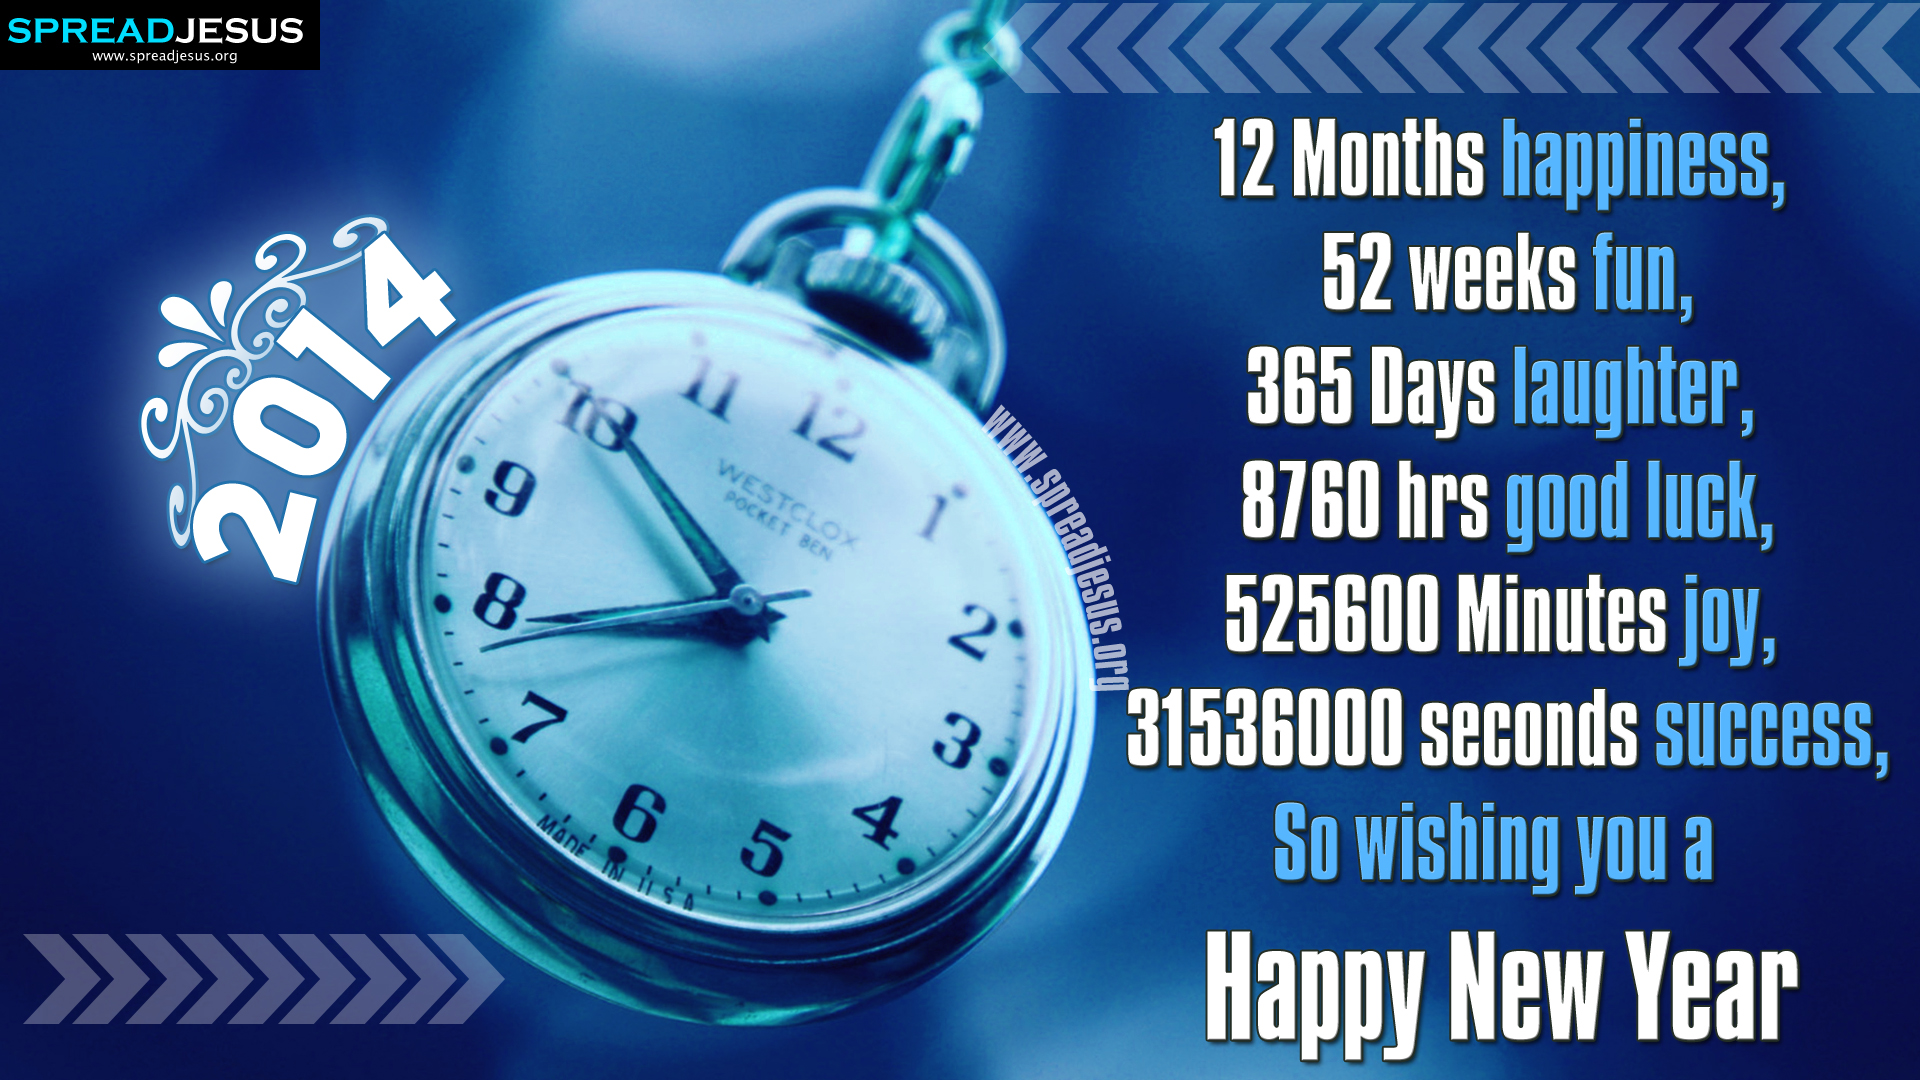 new year 2014 greetings hd wallpapers wishing you a happy new year 12 months happiness